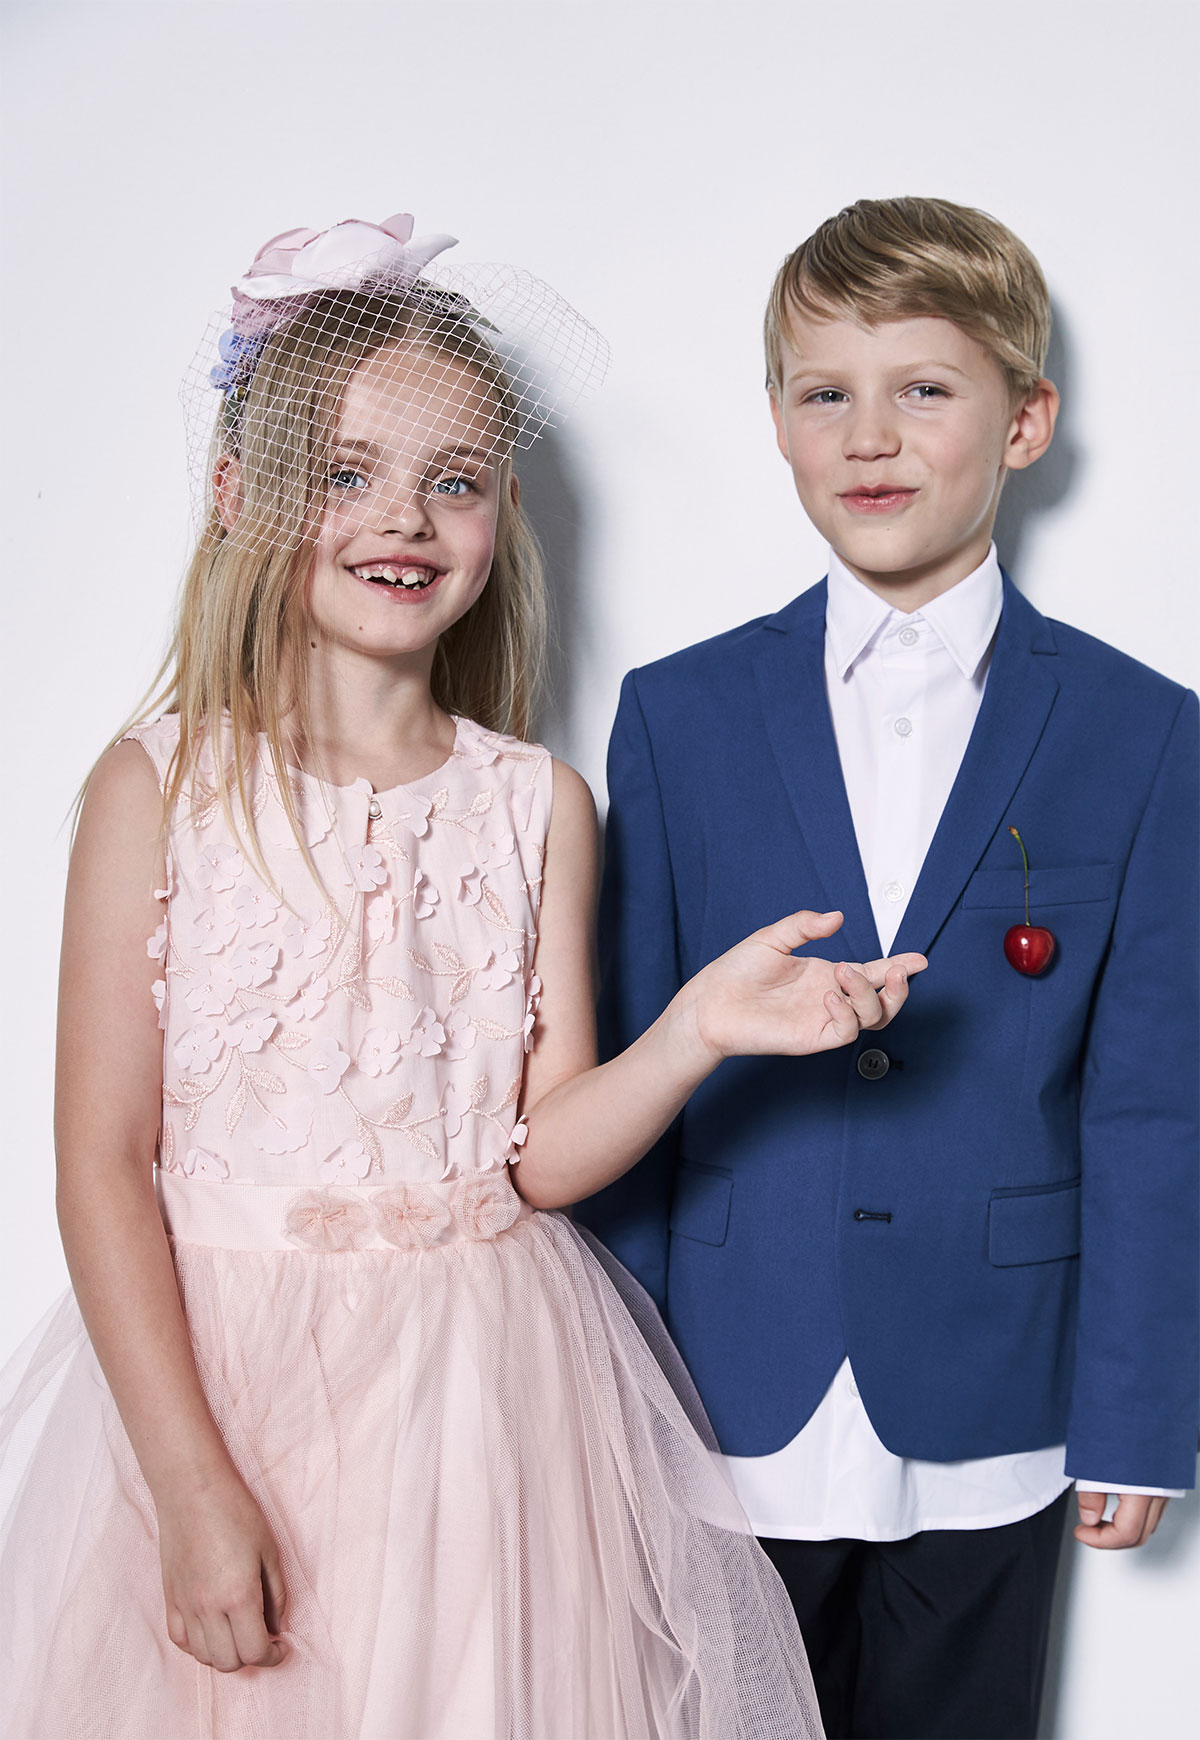 boy and girl formally dressed